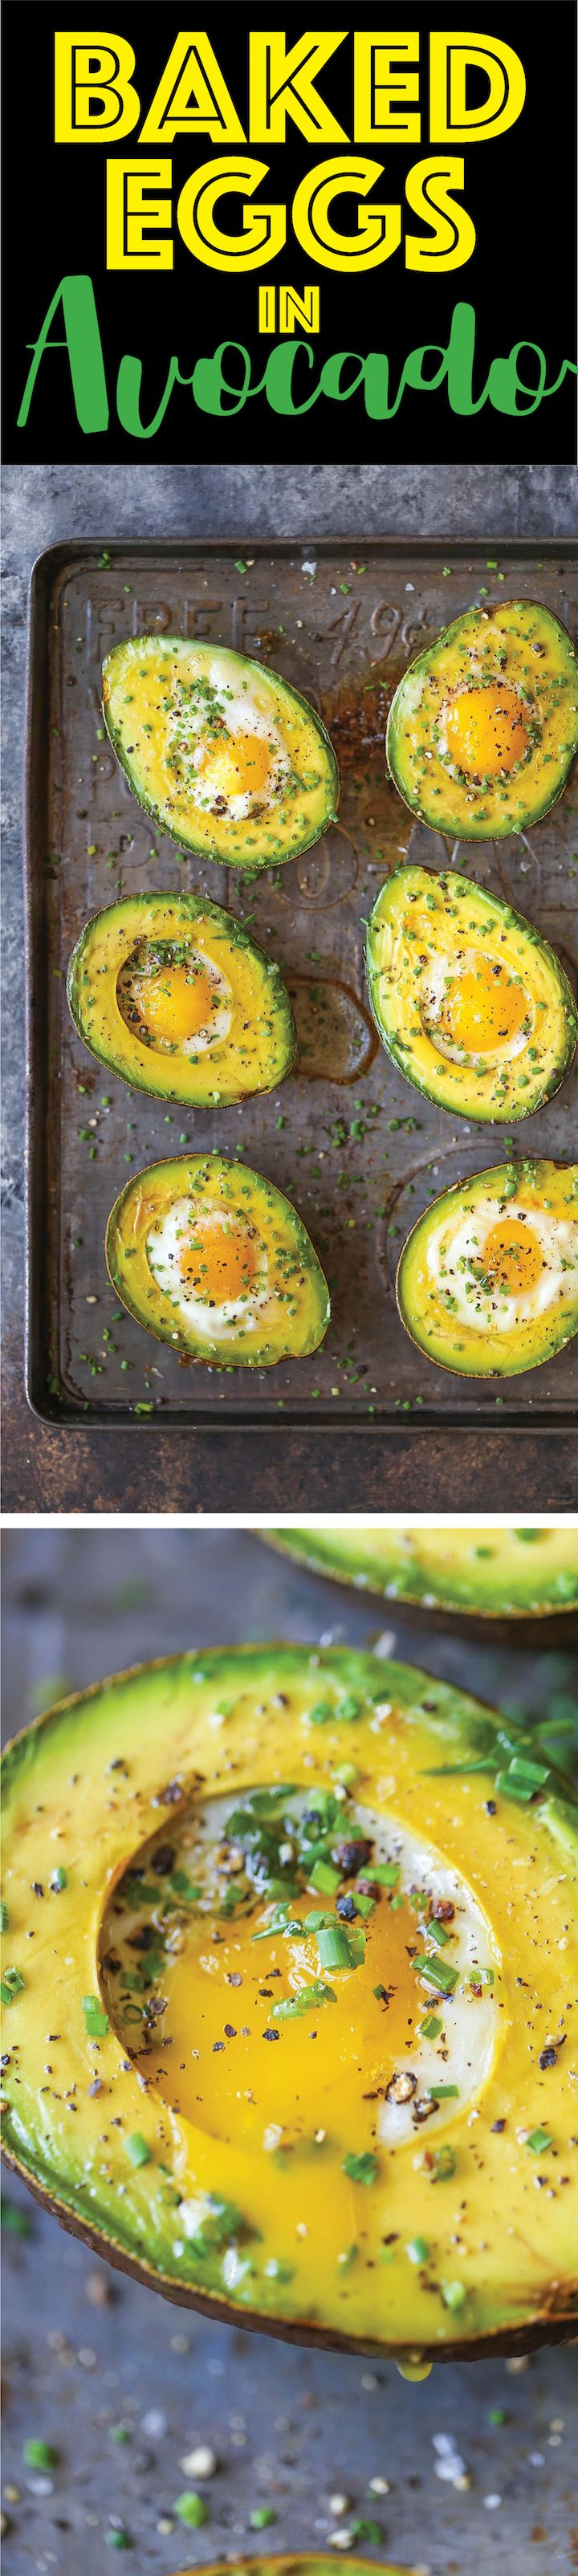 Baked Eggs in Avocado - Who would have thought? You can bake your eggs right in avocado halves for a healthy breakfast option to start your day off right!